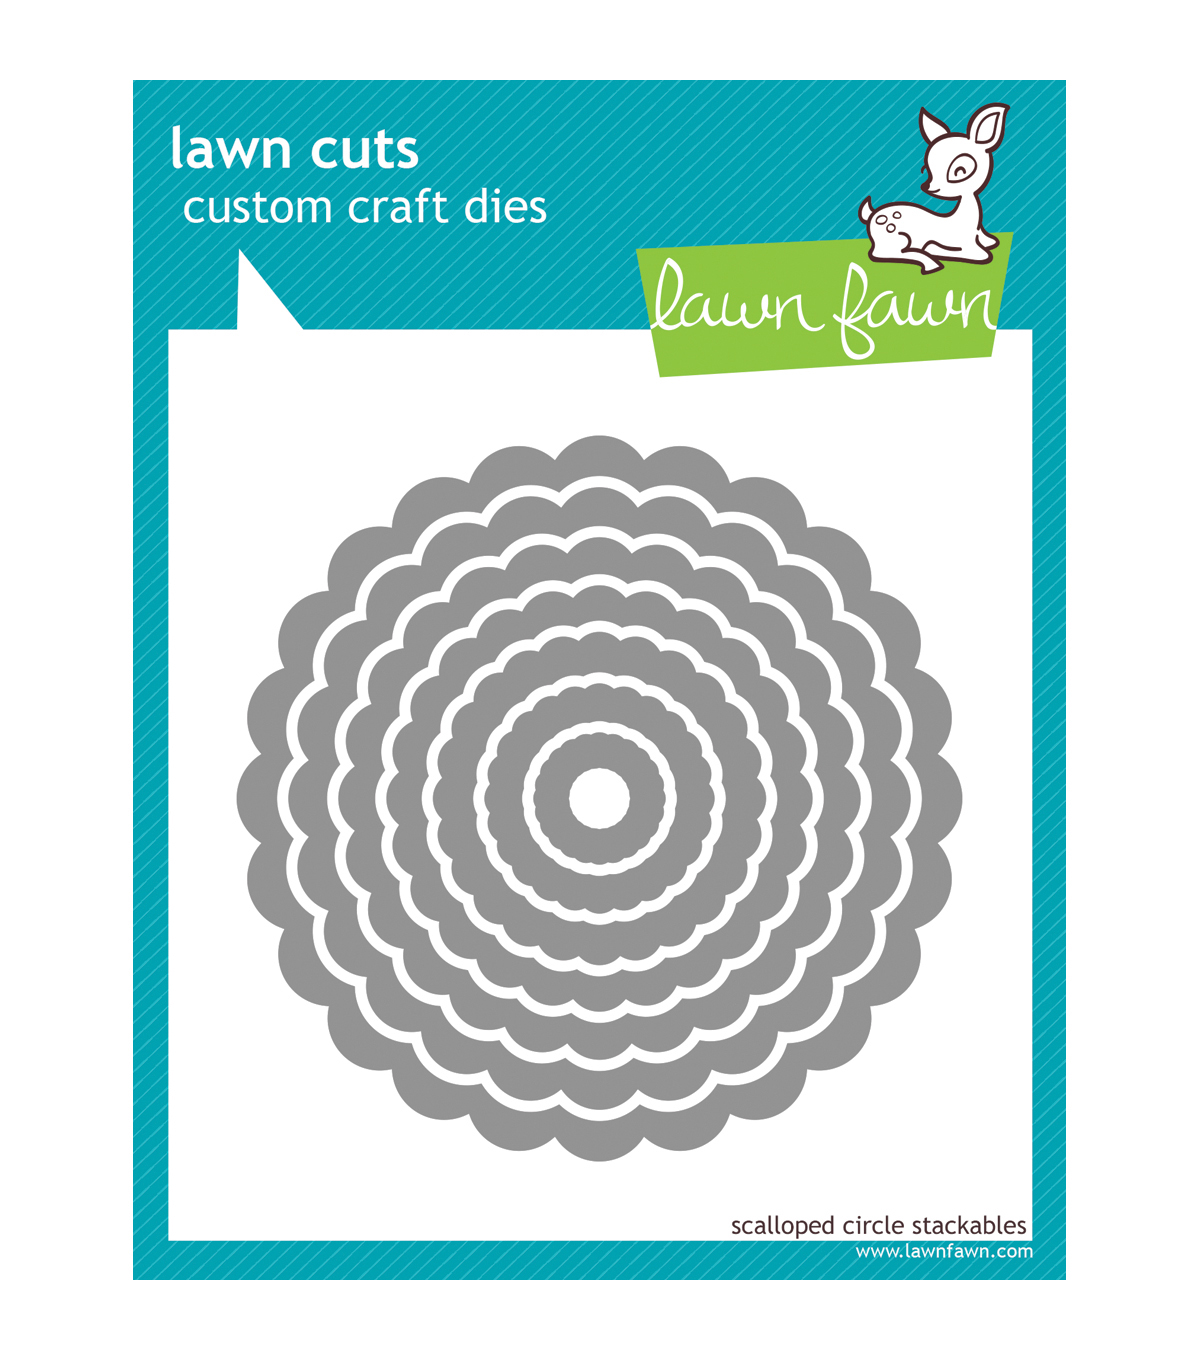 Lawn Fawn Lawn Cuts Custom Craft Die-Scallop Circle Stackables